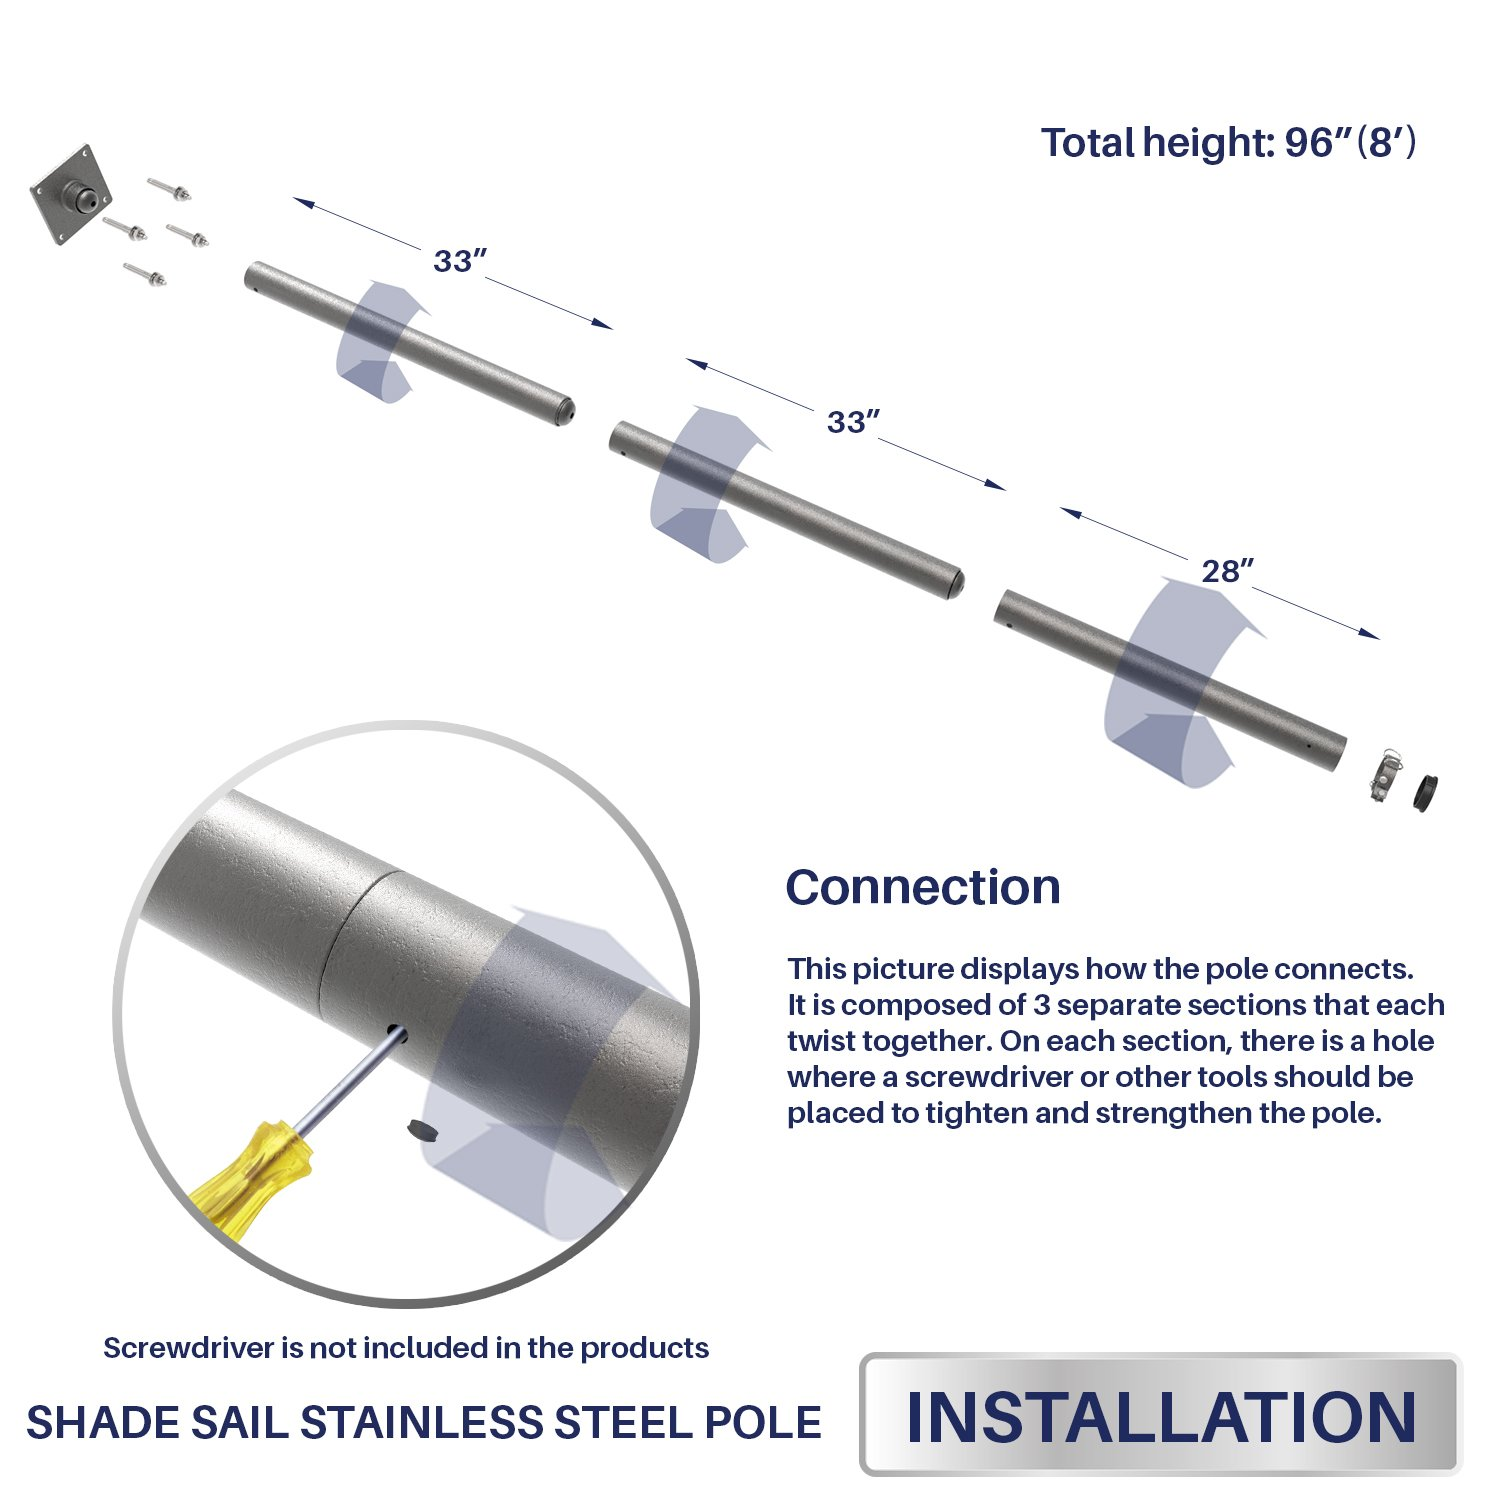 Windscreen4less 96'' Sun Shade Sail Pole,Knitted Shade Sail Stand Post,Awning Support Poles,Canopy support poles,Strengthen,Heavy-duty support-steel - gray by Windscreen4less (Image #4)